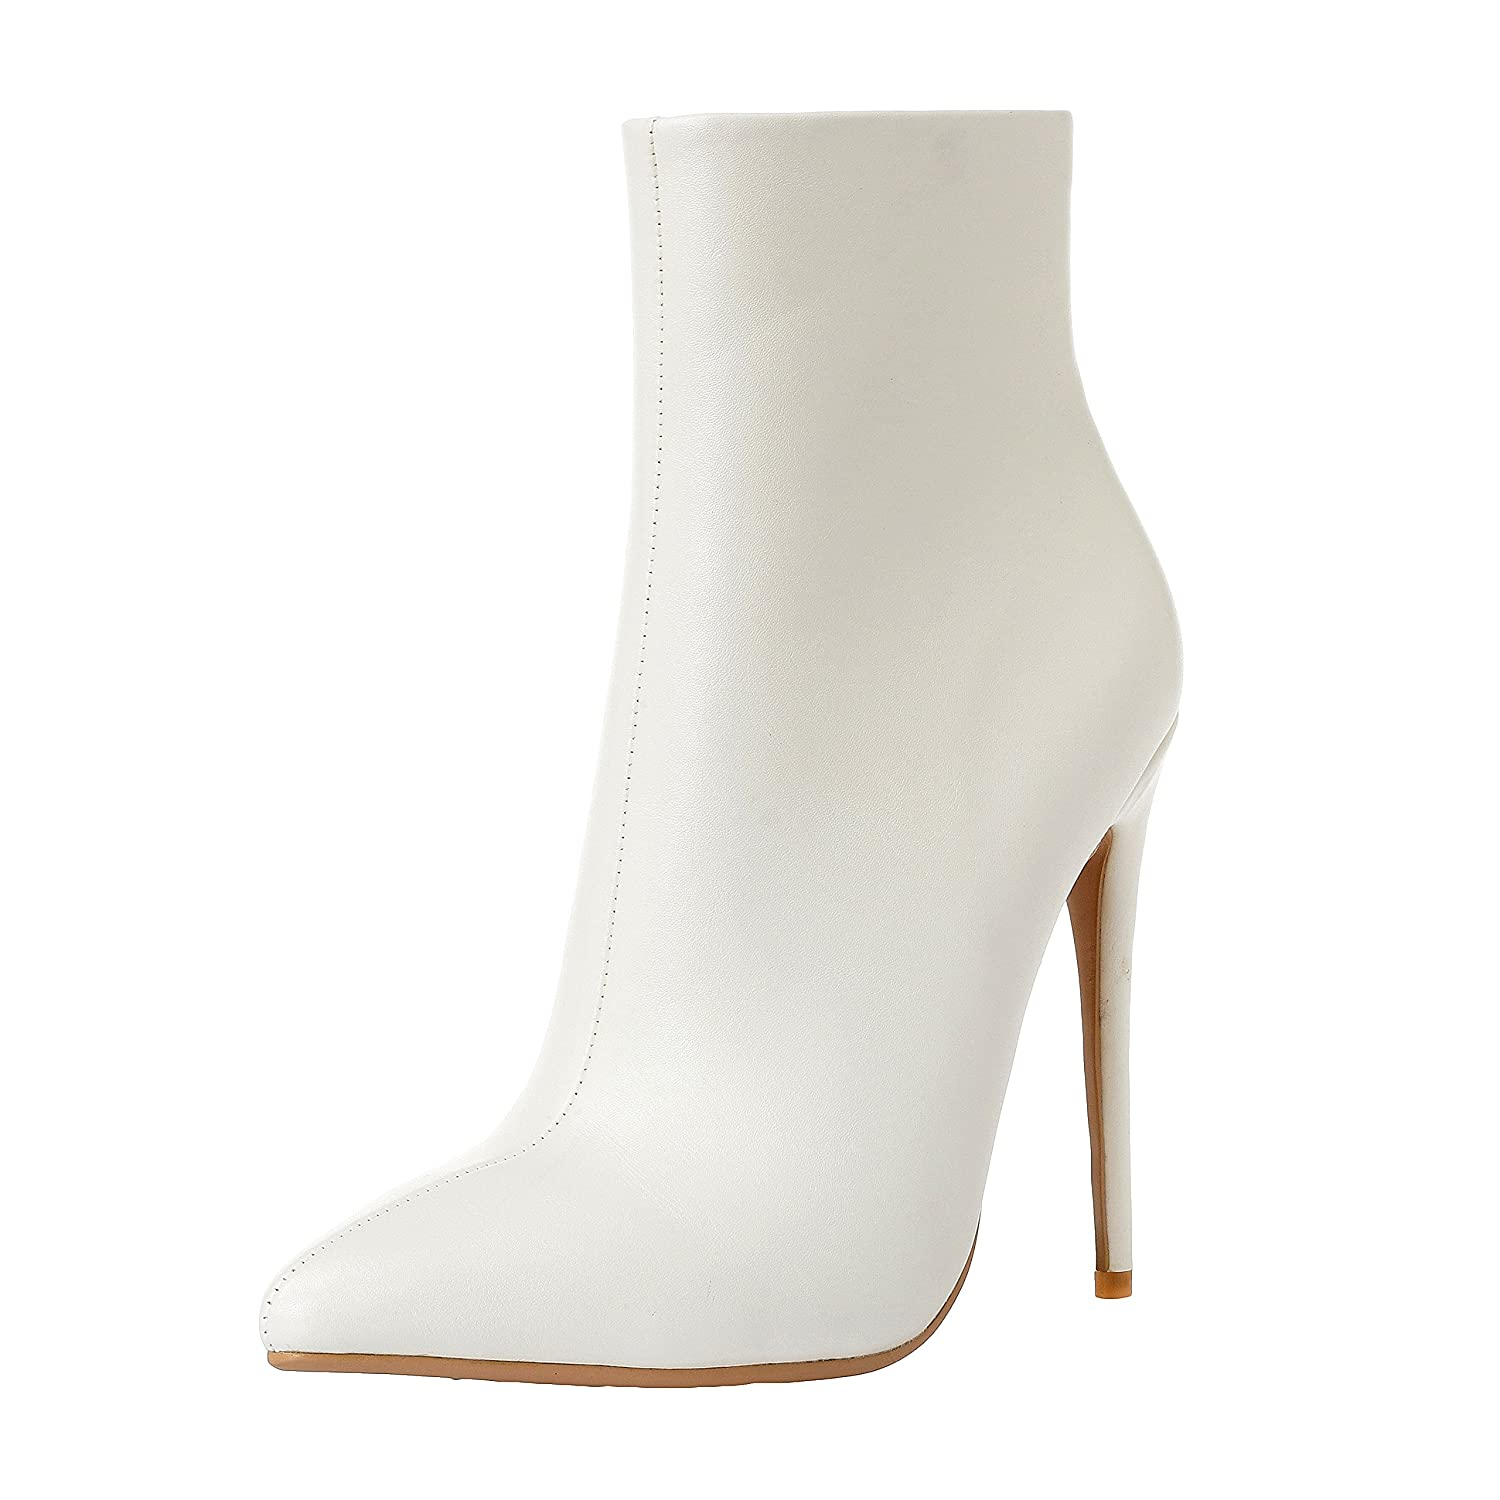 buy popular 6d764 2a032 ZAPROMA Sexy Fashion Zabawa Stiletto Pointy Toe Toe Toe Boots Shoes for  Women. B07DTHVQVR Boots 9d38fd